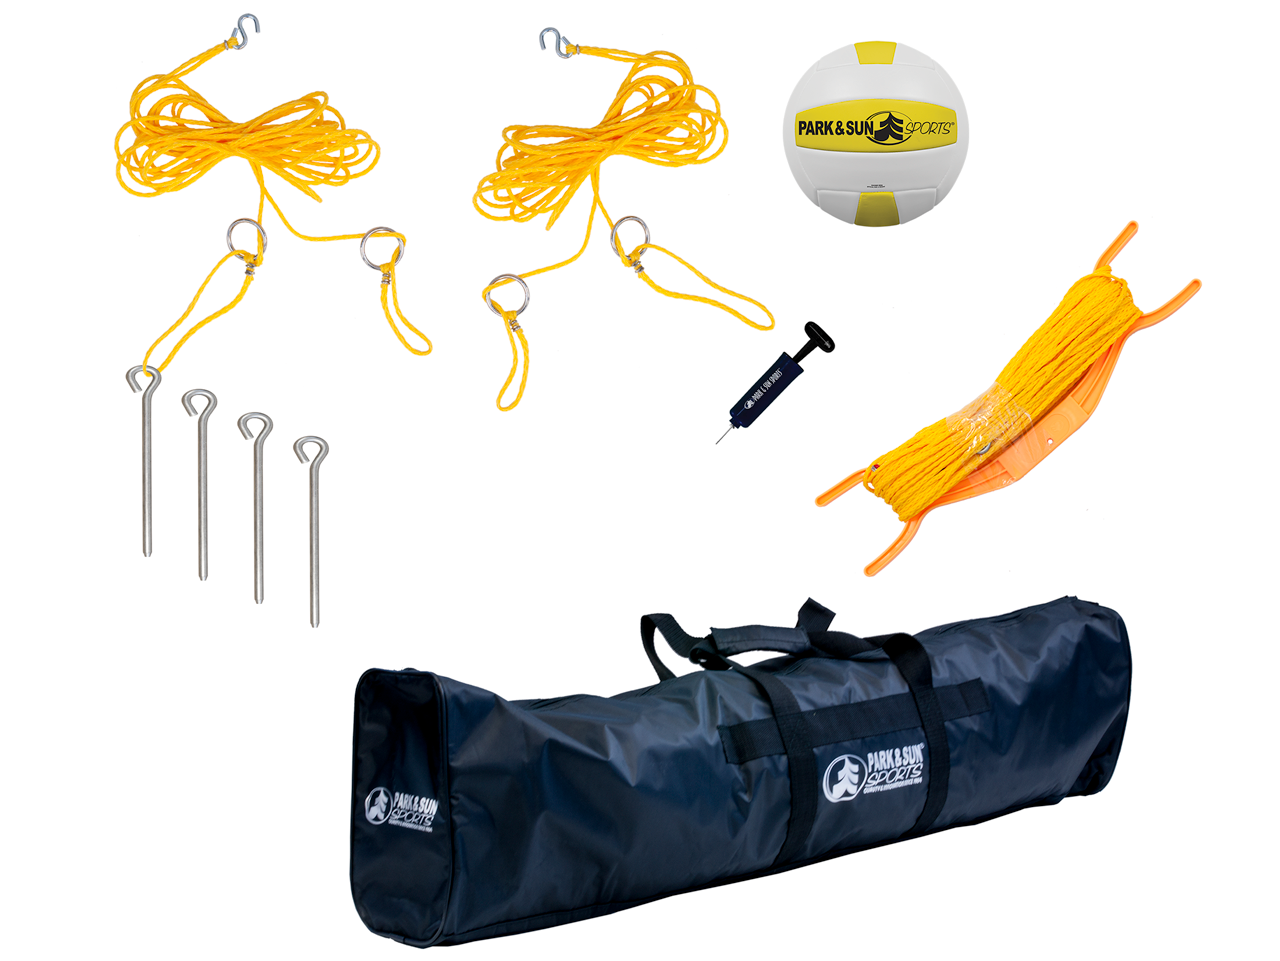 Park and Sports Tournament 179 Volleyball Set Accessories